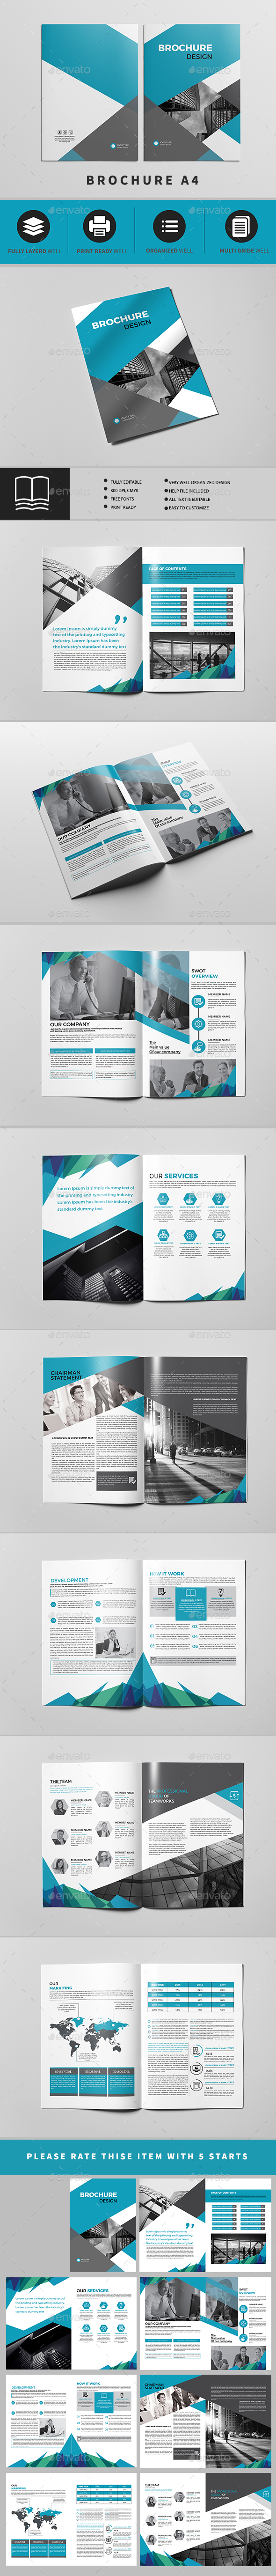 Company Profile A4 16 Pages - Brochures Print Templates